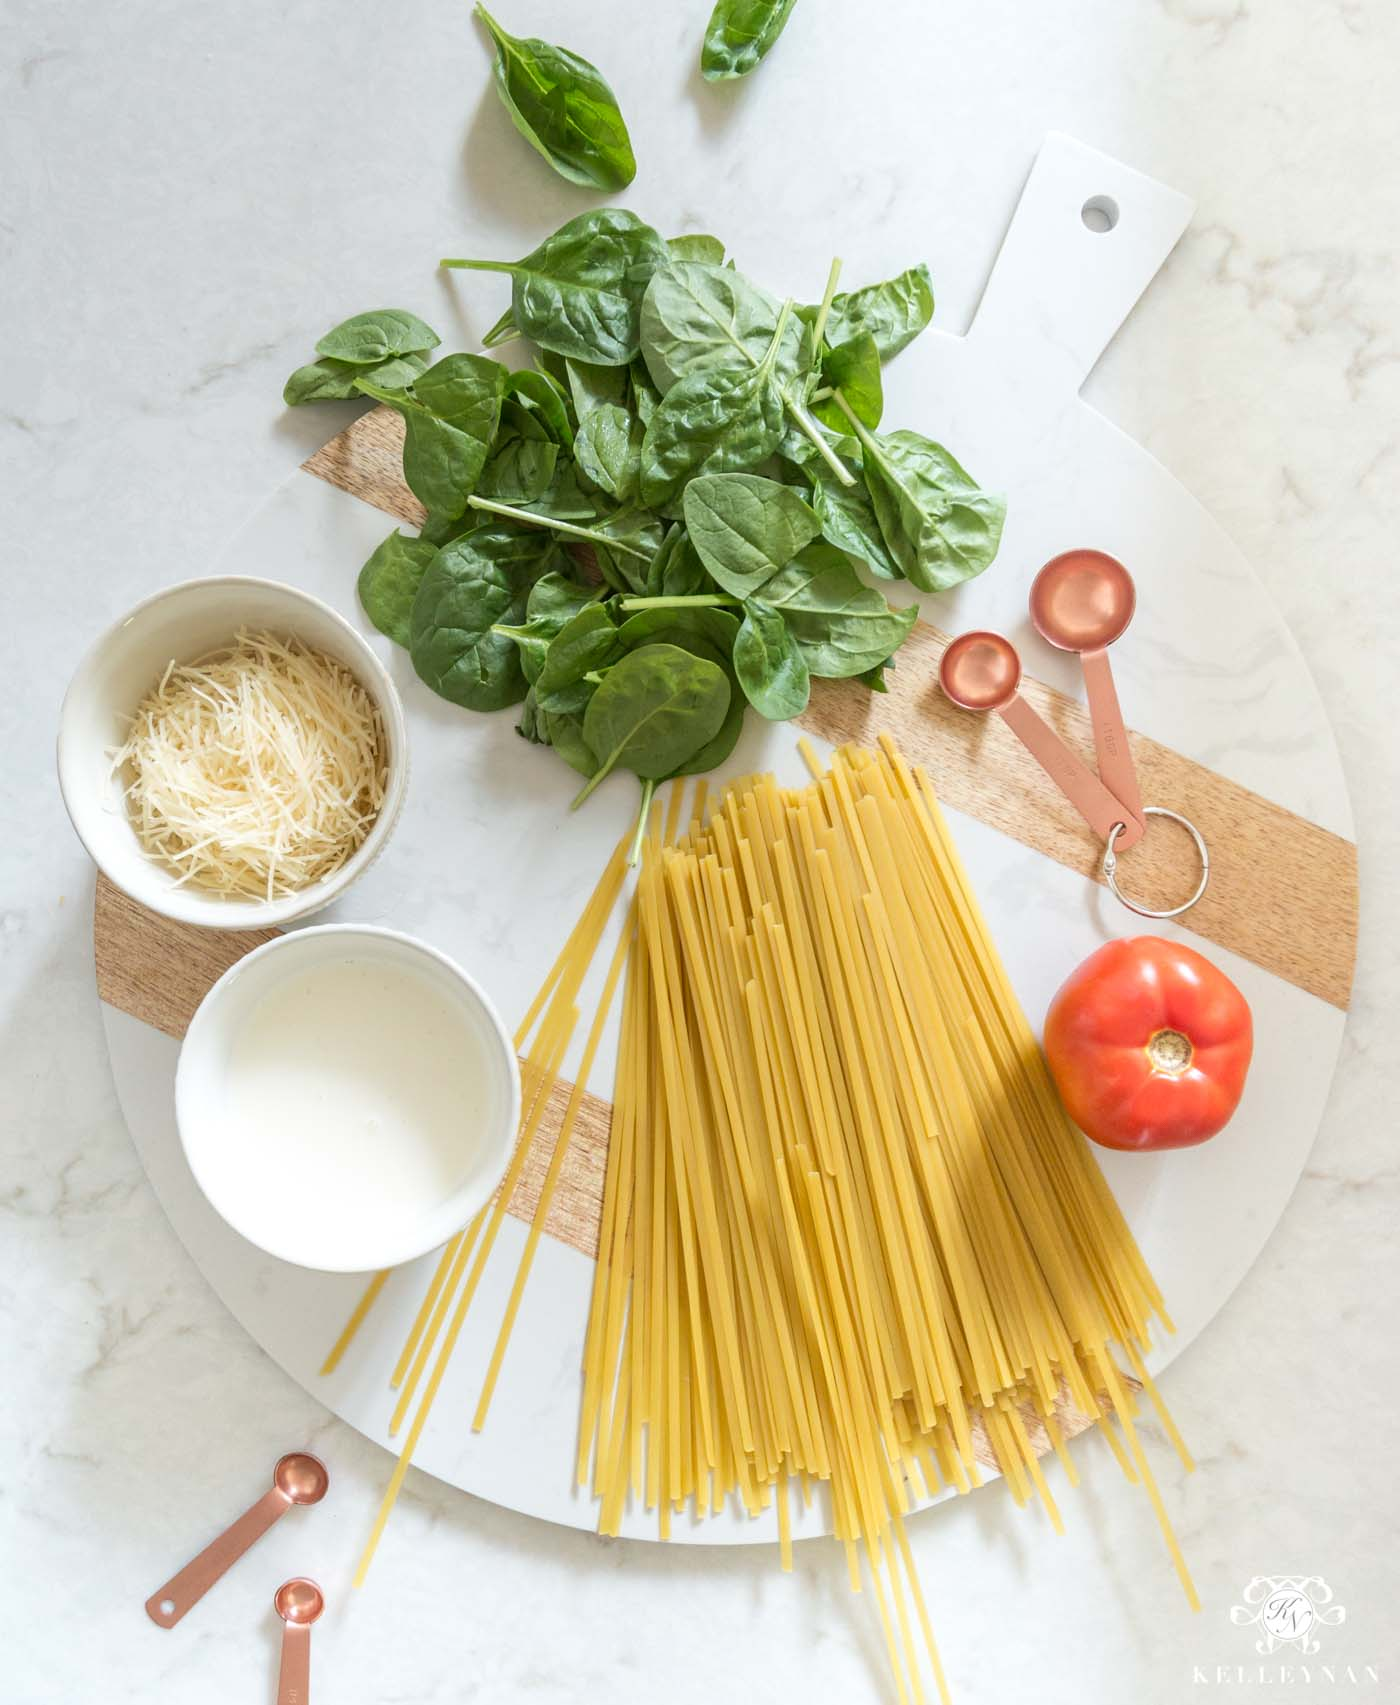 How to make spinach fettucine alfredo from scratch - simple step by step recipe!